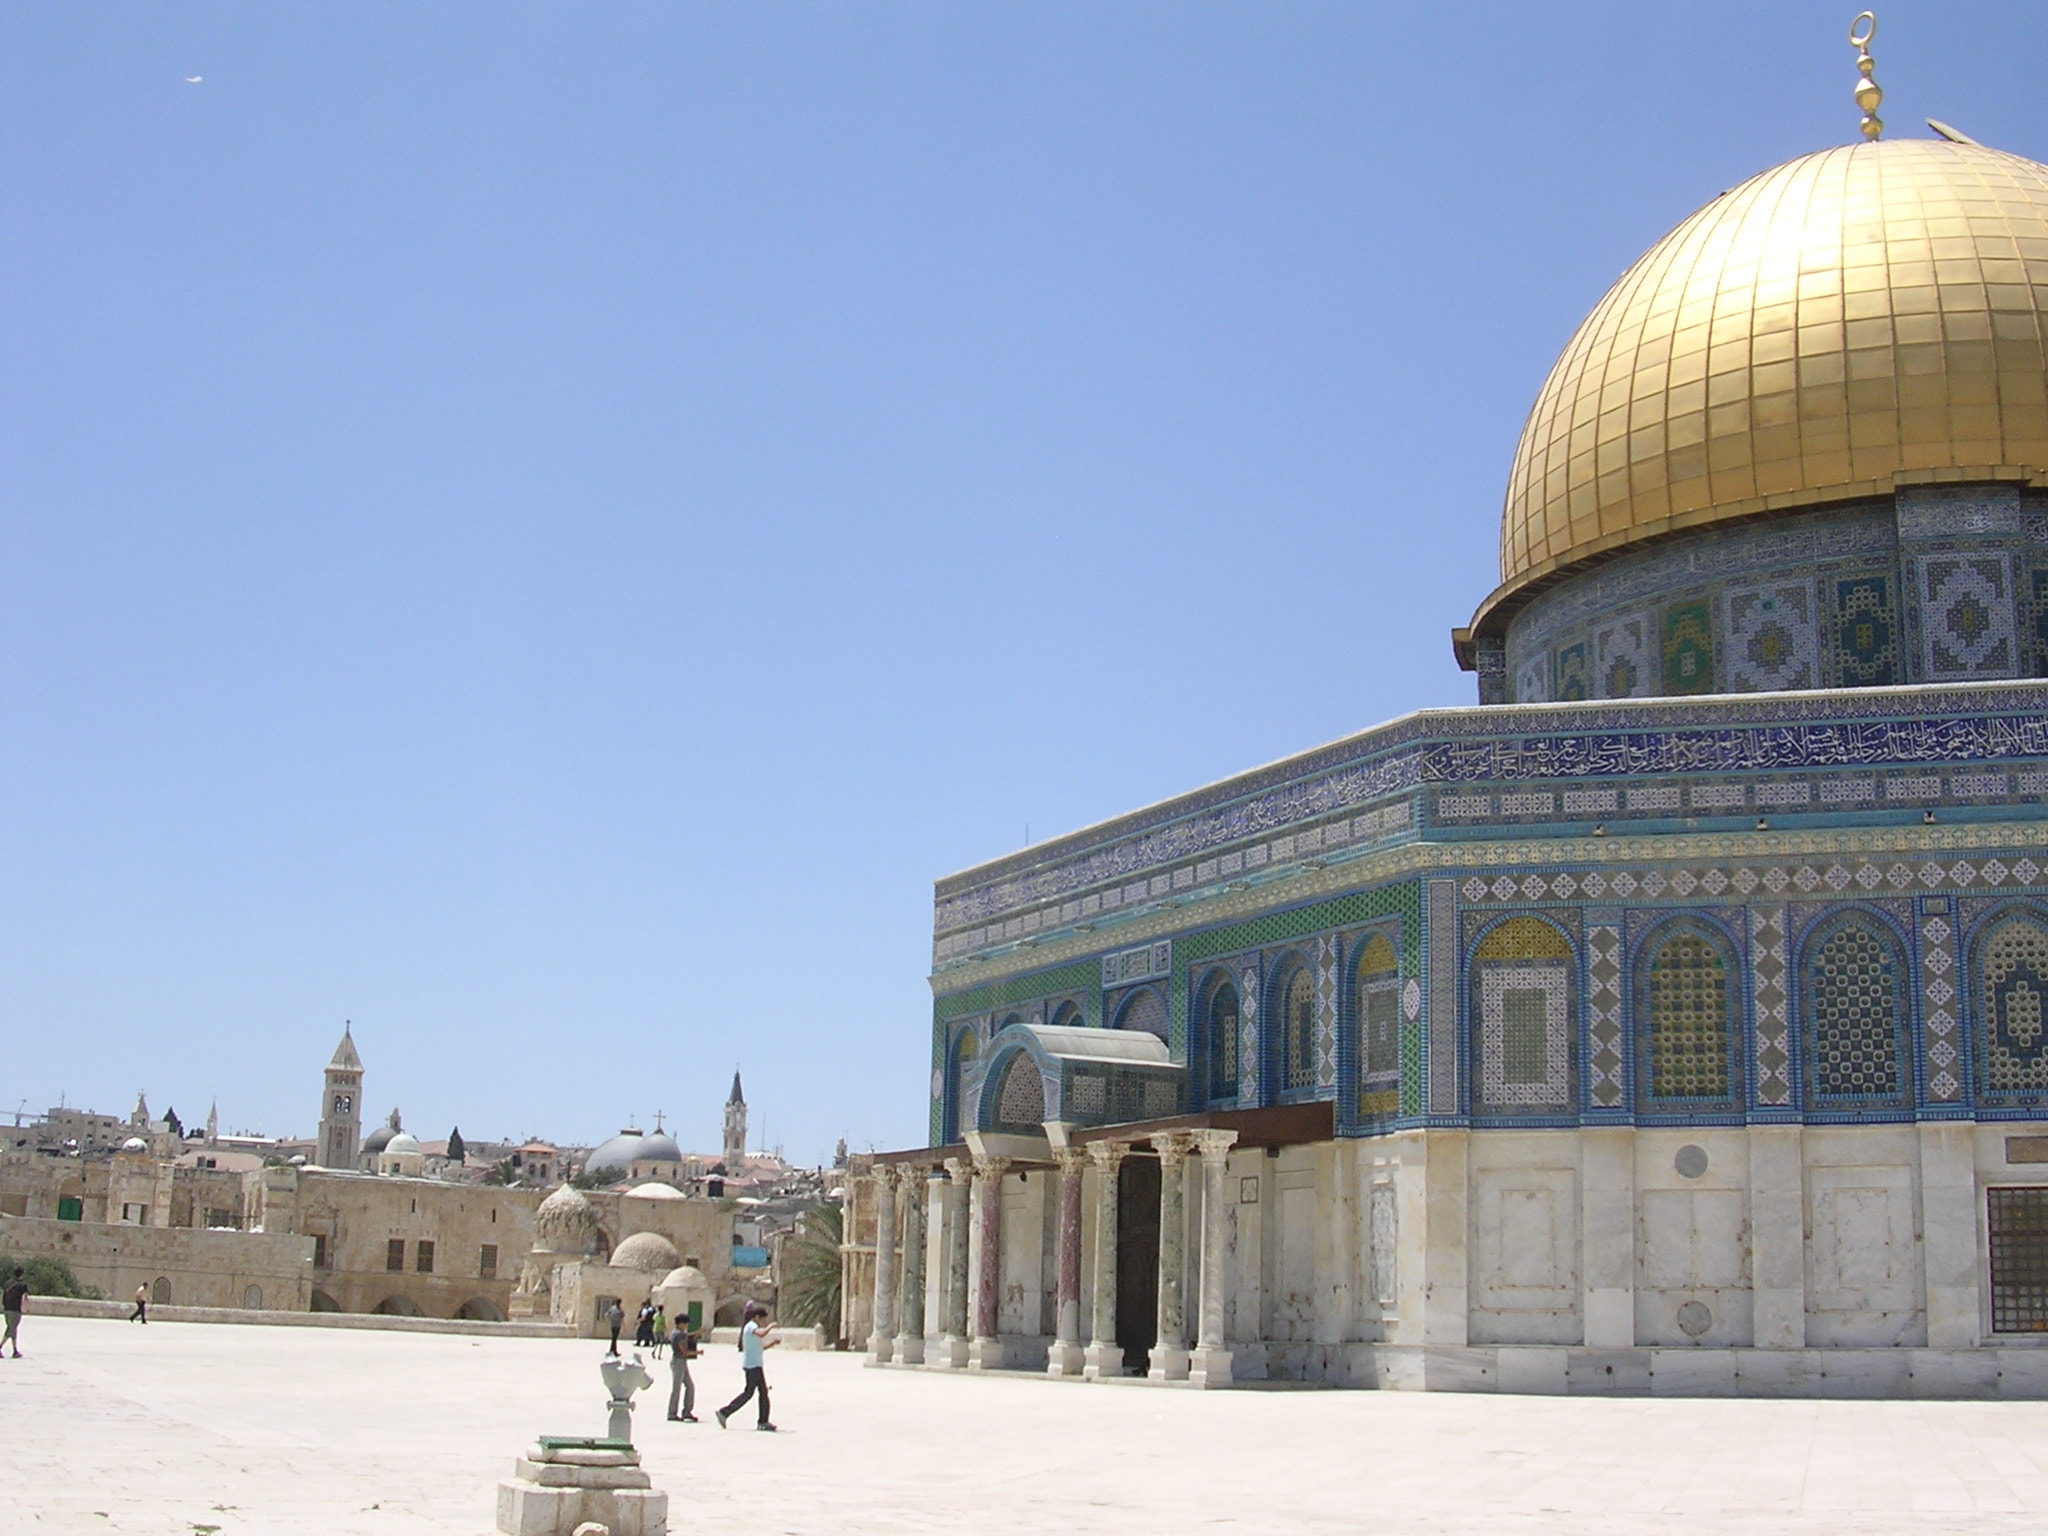 Photograph Dome of the Rock by Anton Stark on 500px